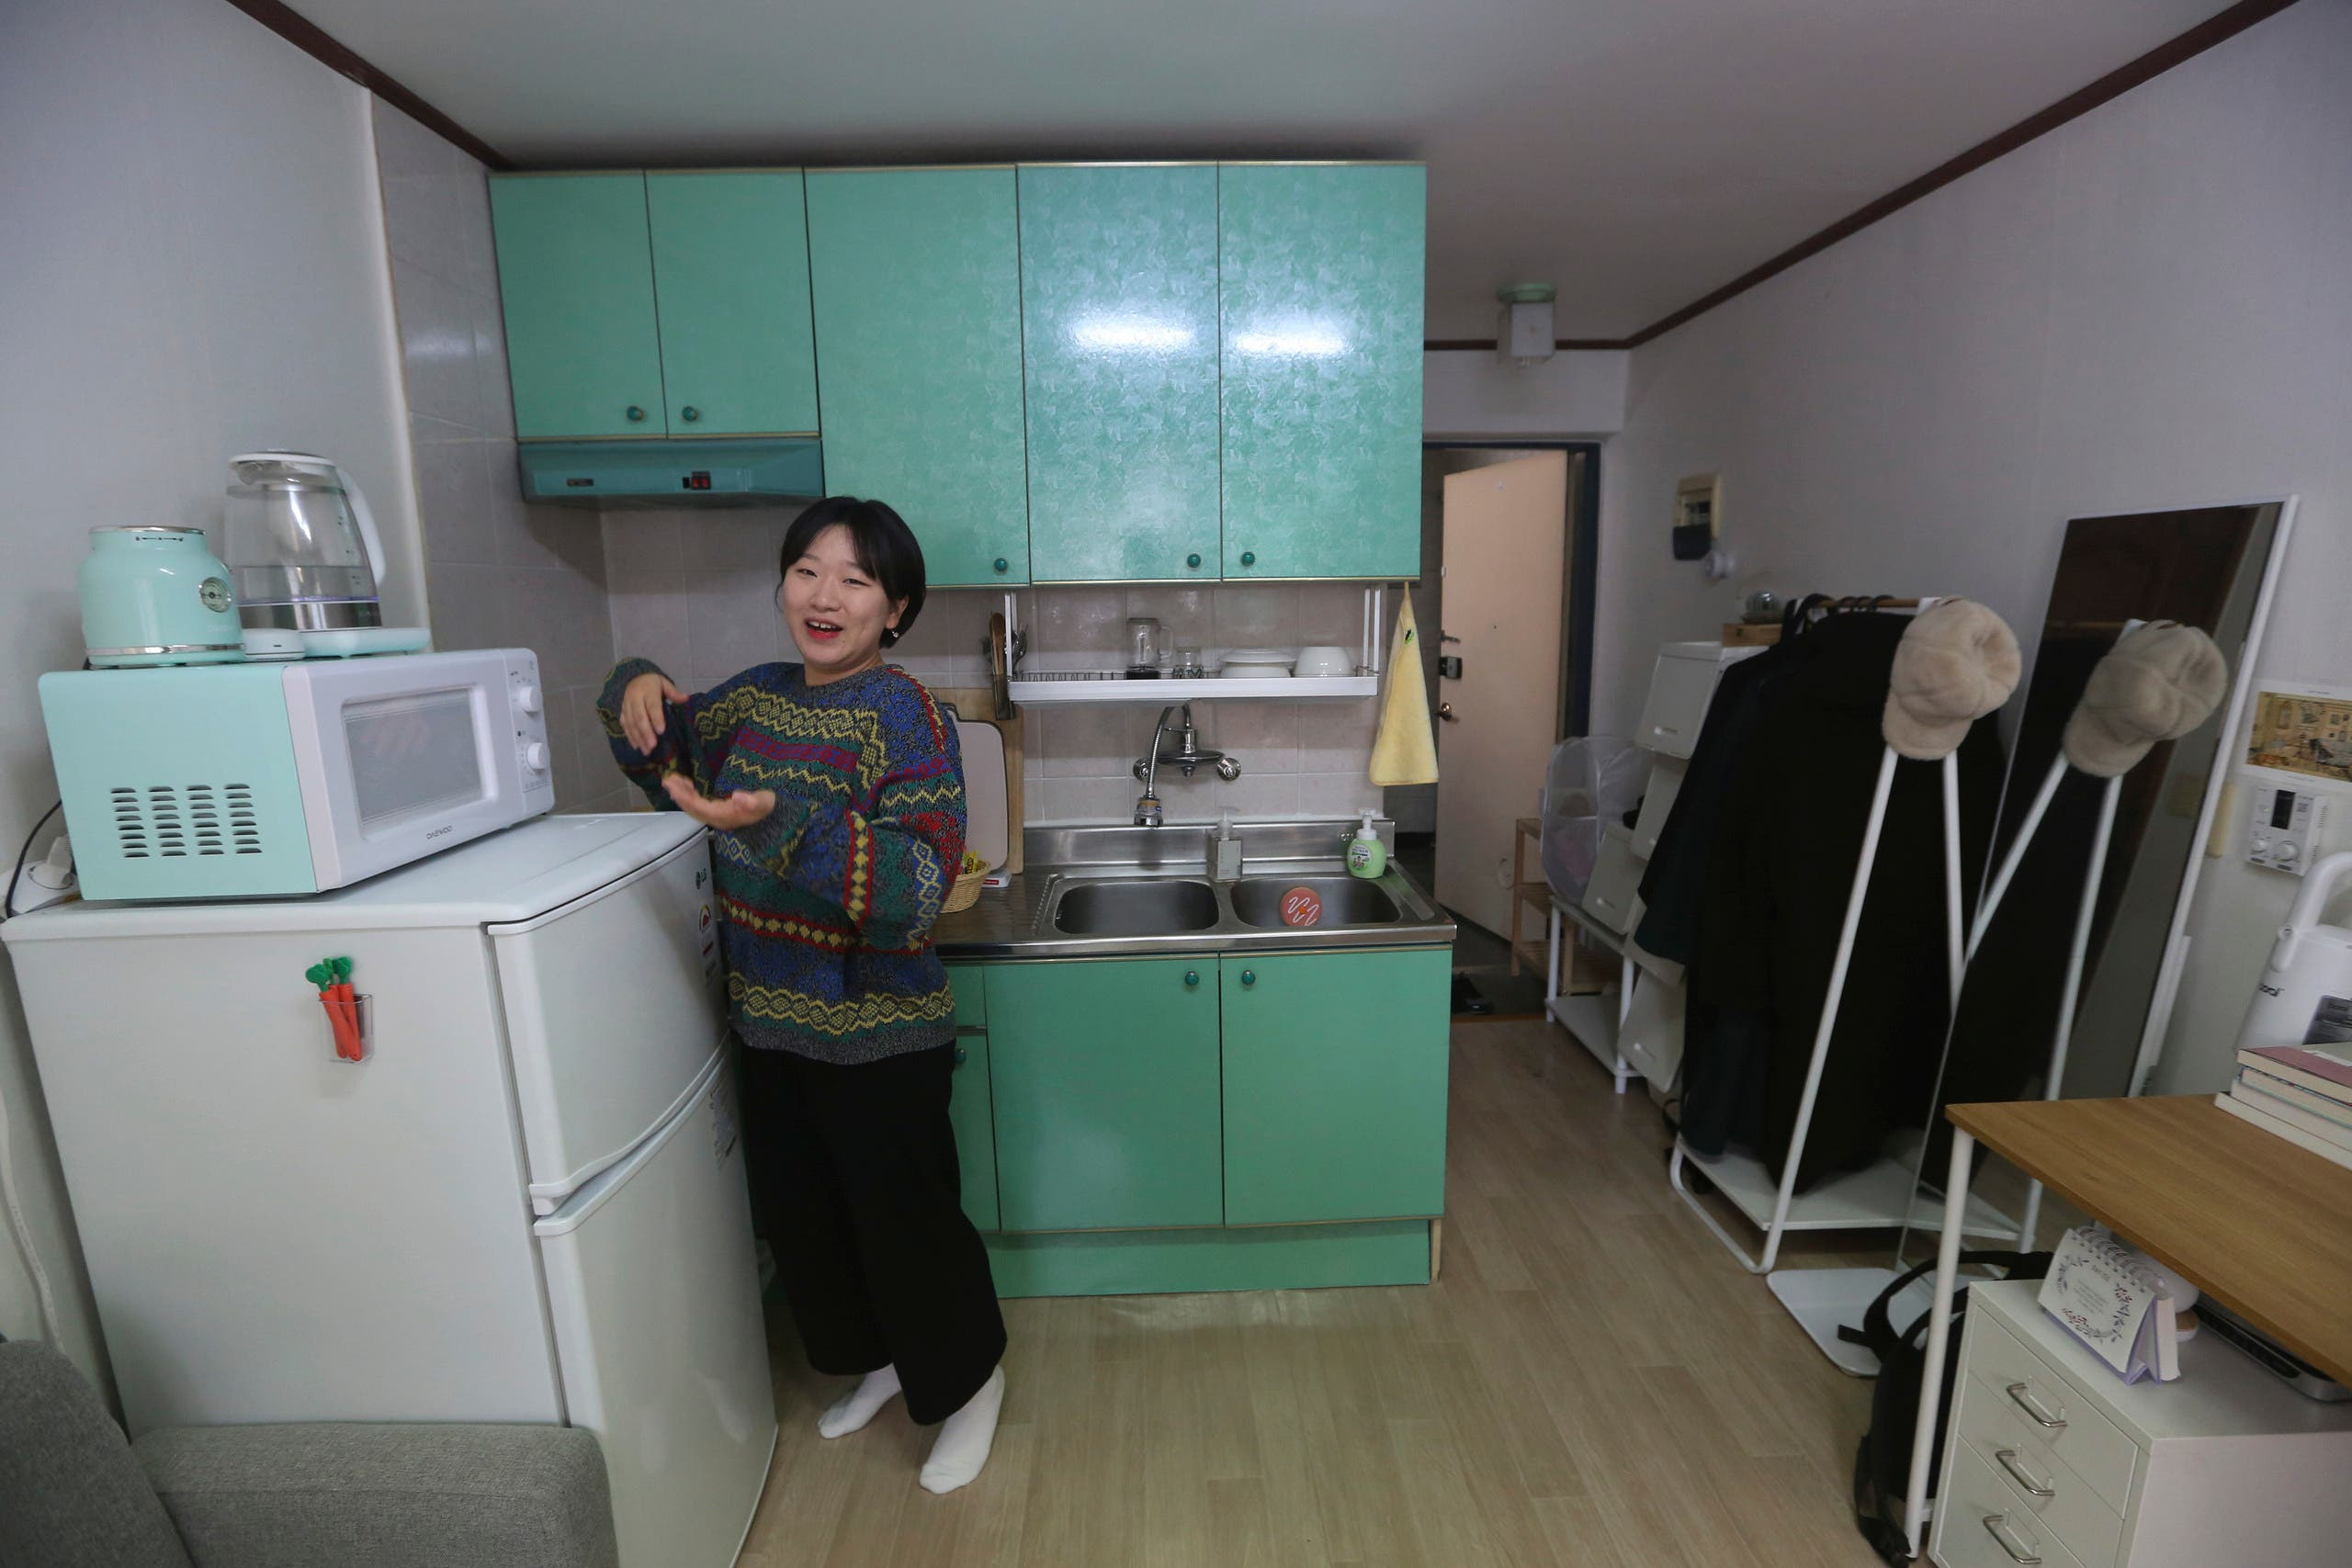 Kim Da-hye, a 29-year-old South Korean, talks about her semi-basement apartment in Seoul. (AP)